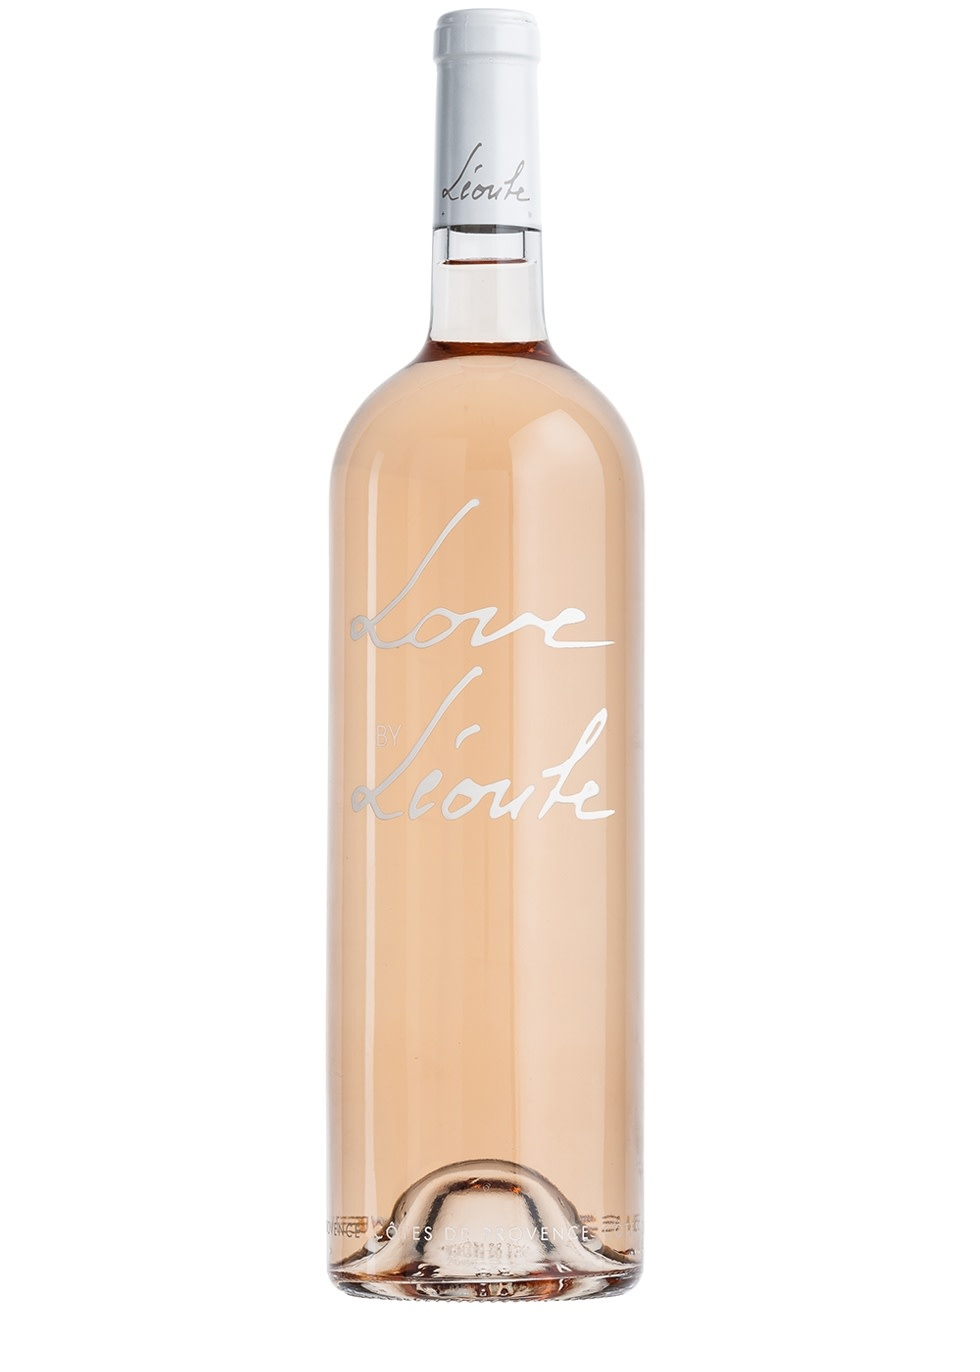 Love by Leoube Rosé Provence 2018 - 750ml